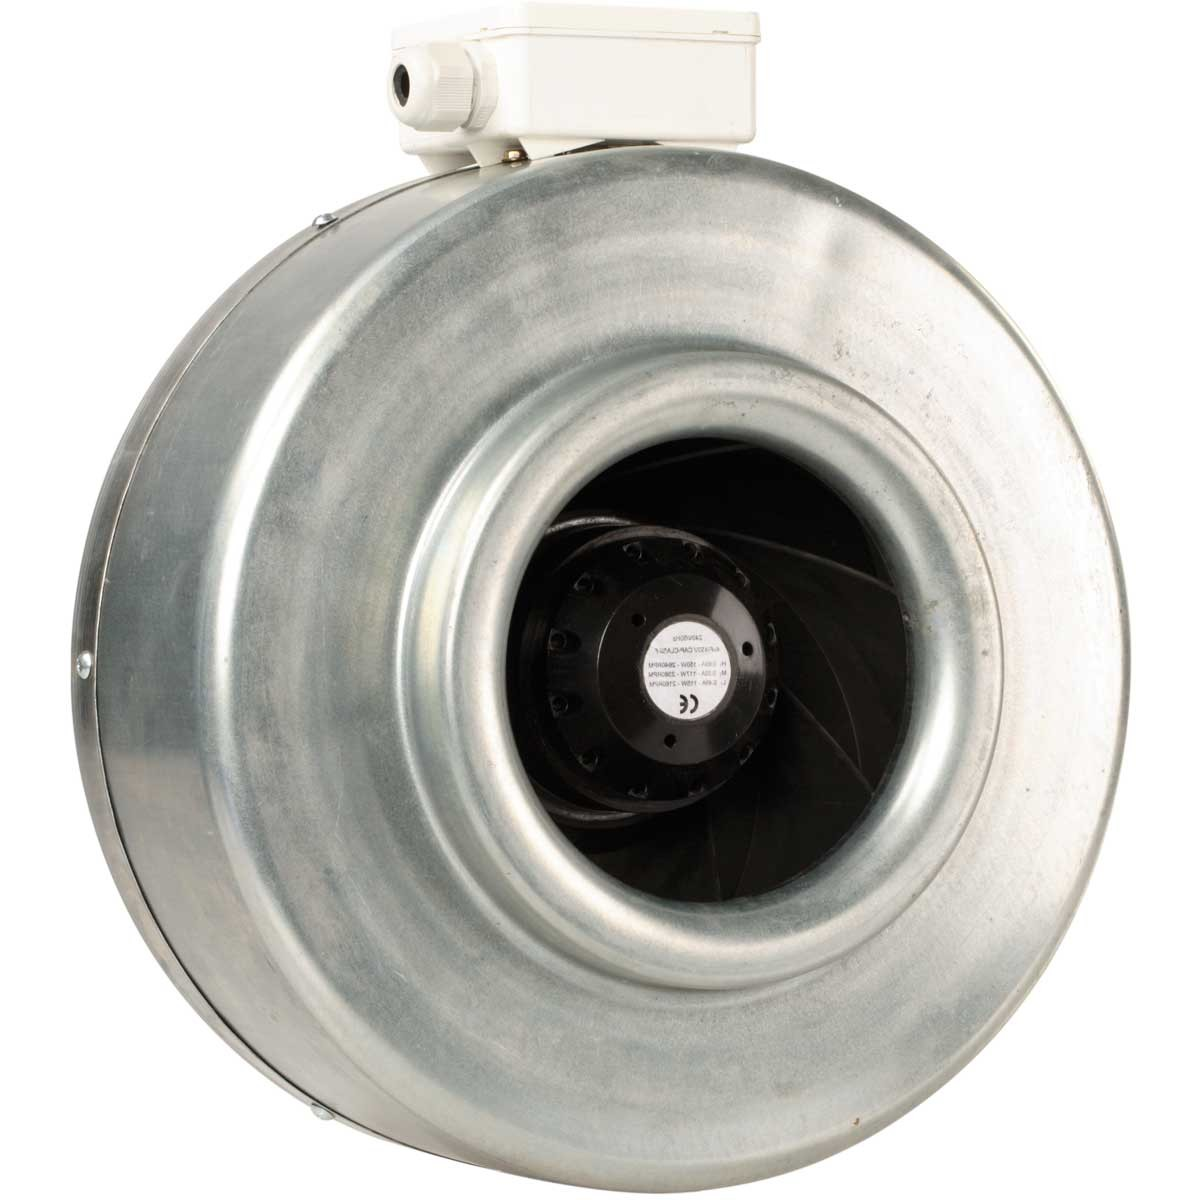 Jetflow-HIT Metal inline - 100mm